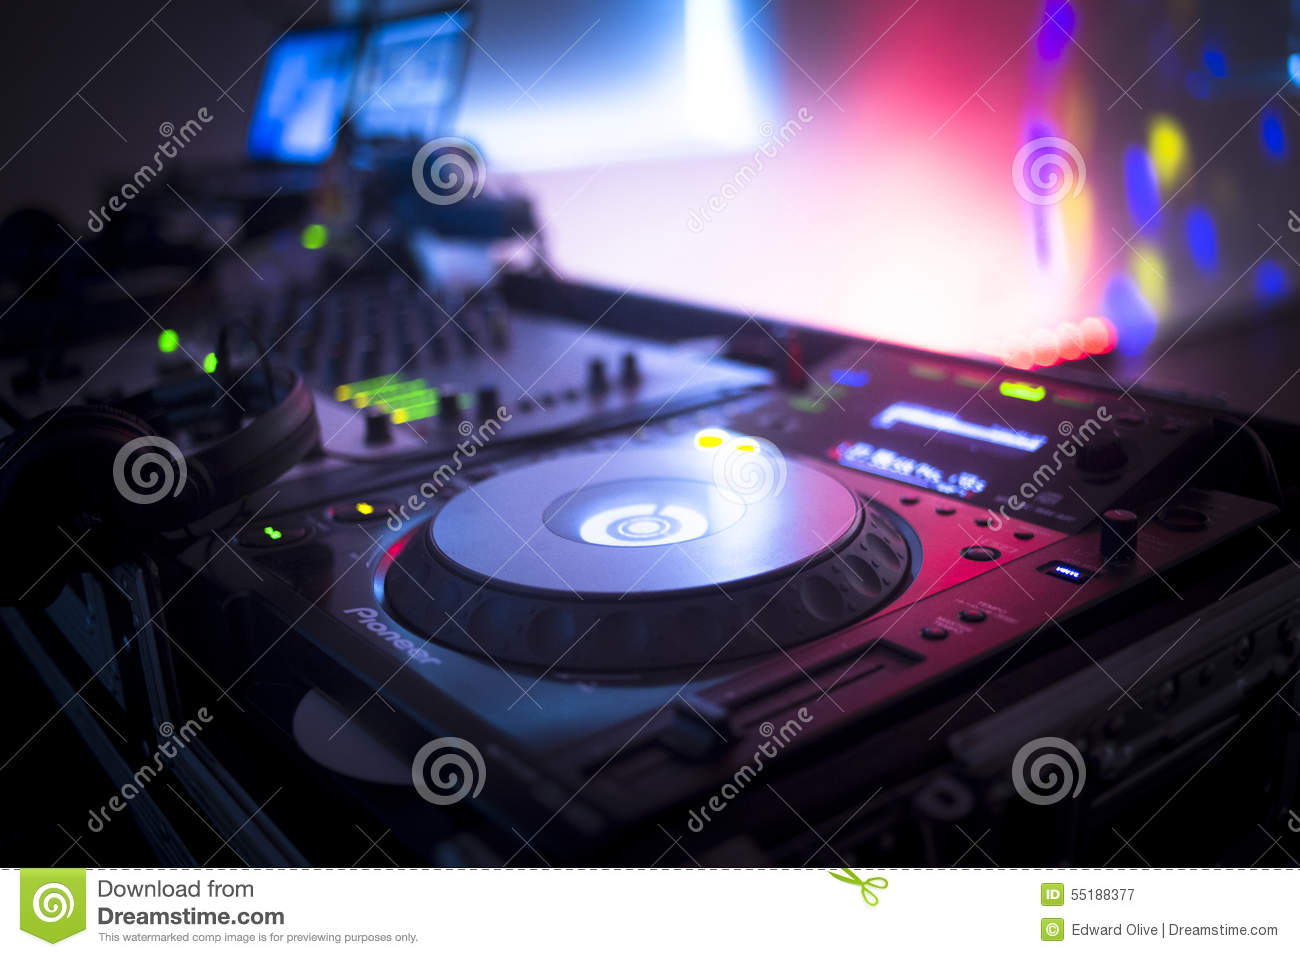 a essay of club dj The breakfast club essay - professional reports at moderate costs available here will turn your education into delight stop receiving bad grades with these custom research paper recommendations forget about those sleepless nights writing your report with our academic writing assistance.